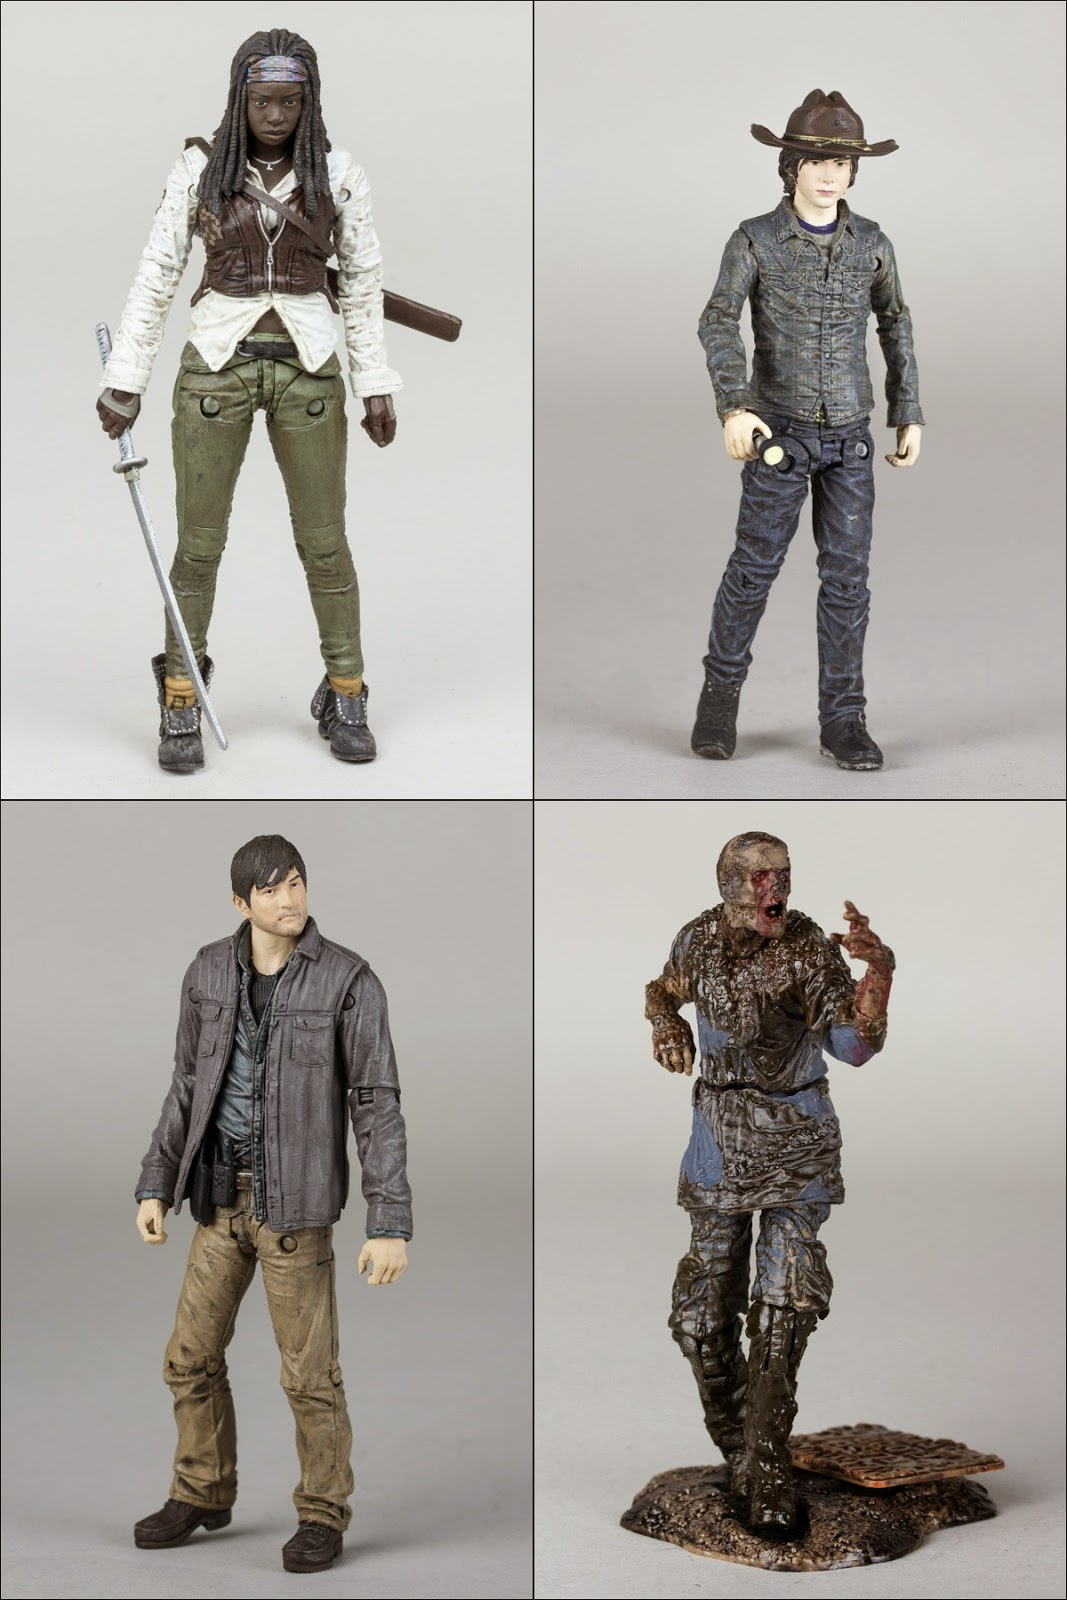 The Walking Dead Television Series 7 Action Figures by McFarlane Toys - Michonne, Carl Grimes, Gareth & Mud Walker